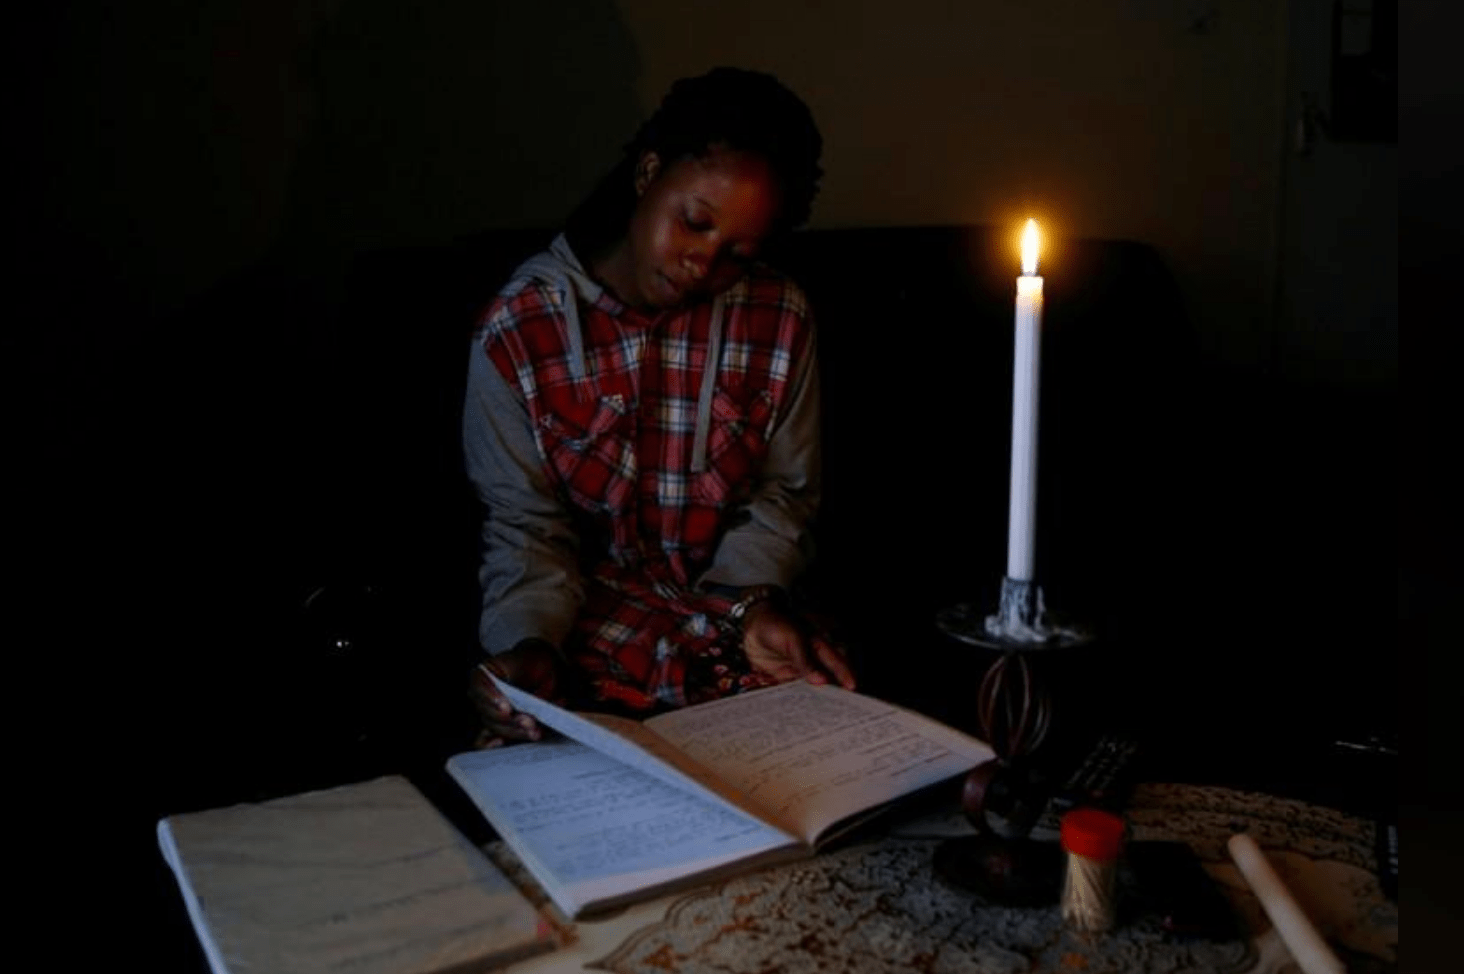 Student Rutendo Madziva reads by candlelight during an electrical power cut in Marondera, Zimbabwe, May 14, 2019. REUTERS/Philimon Bulawayo